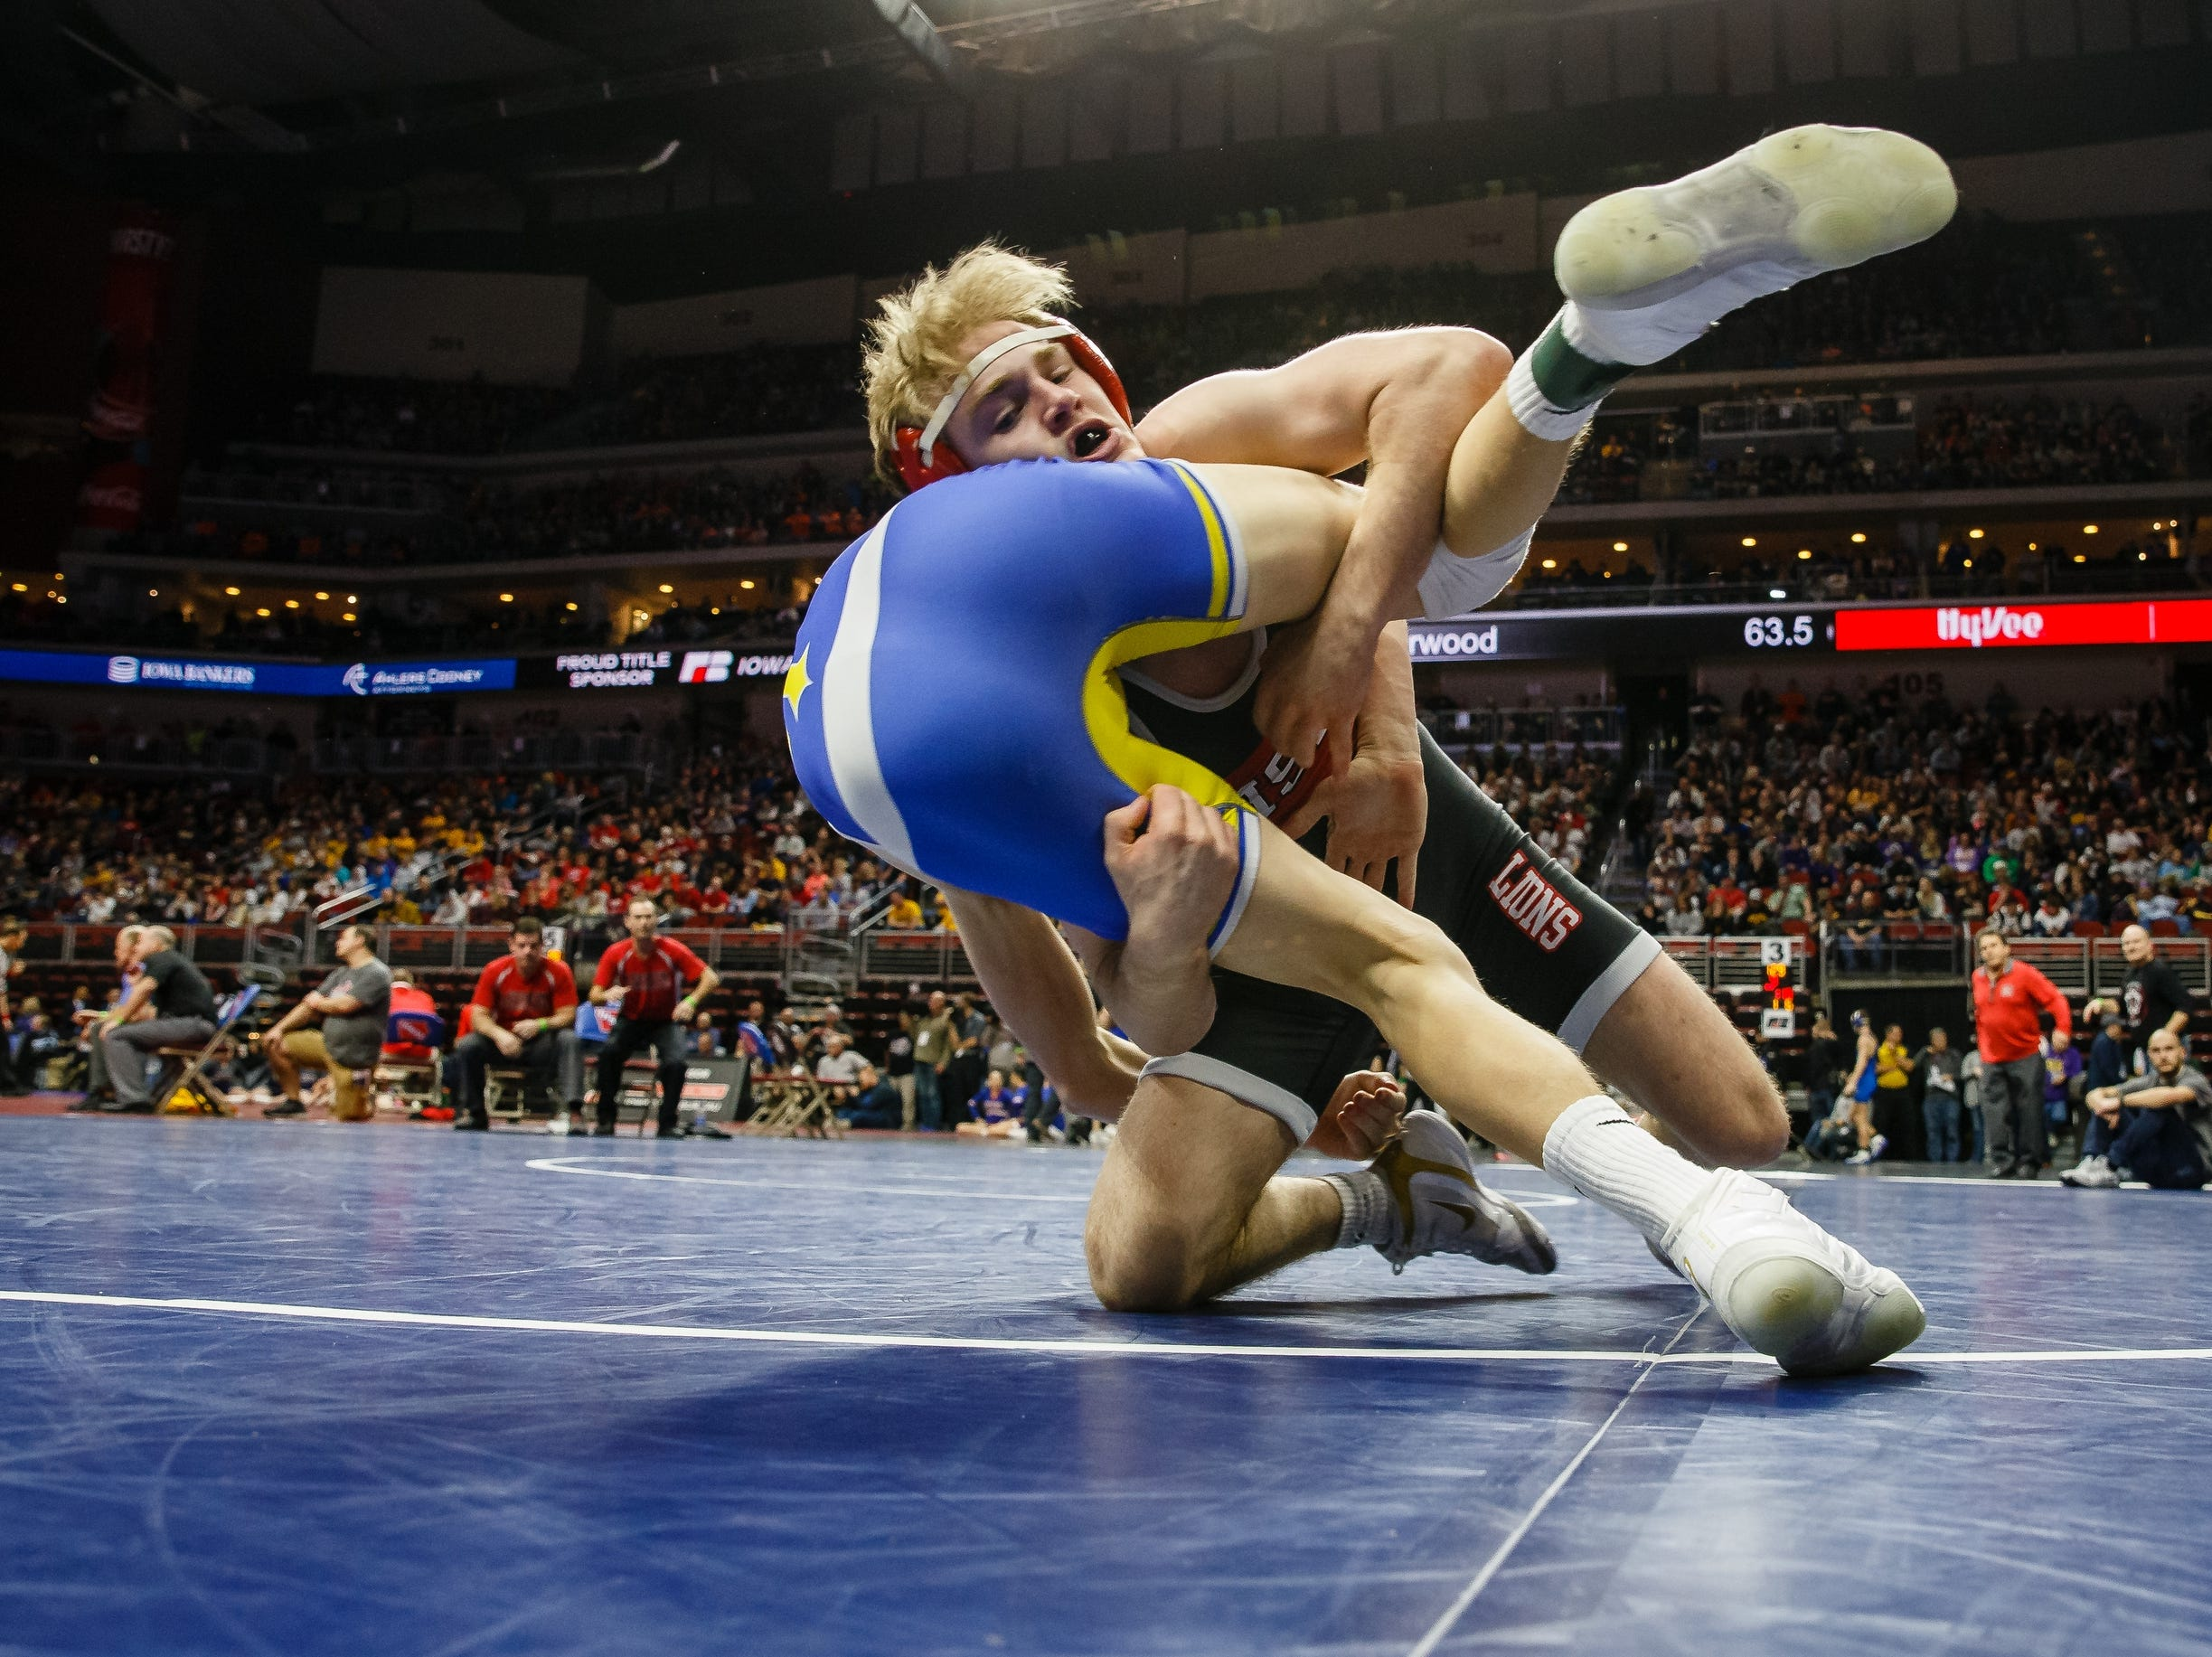 Cael Happel of Lisbon wrestles Easton Larson of Don Bosco during their class 1A, 132-pound state championship semifinal match on Friday in Des Moines. Happel moves onto the final with a 24-9 tech fall.